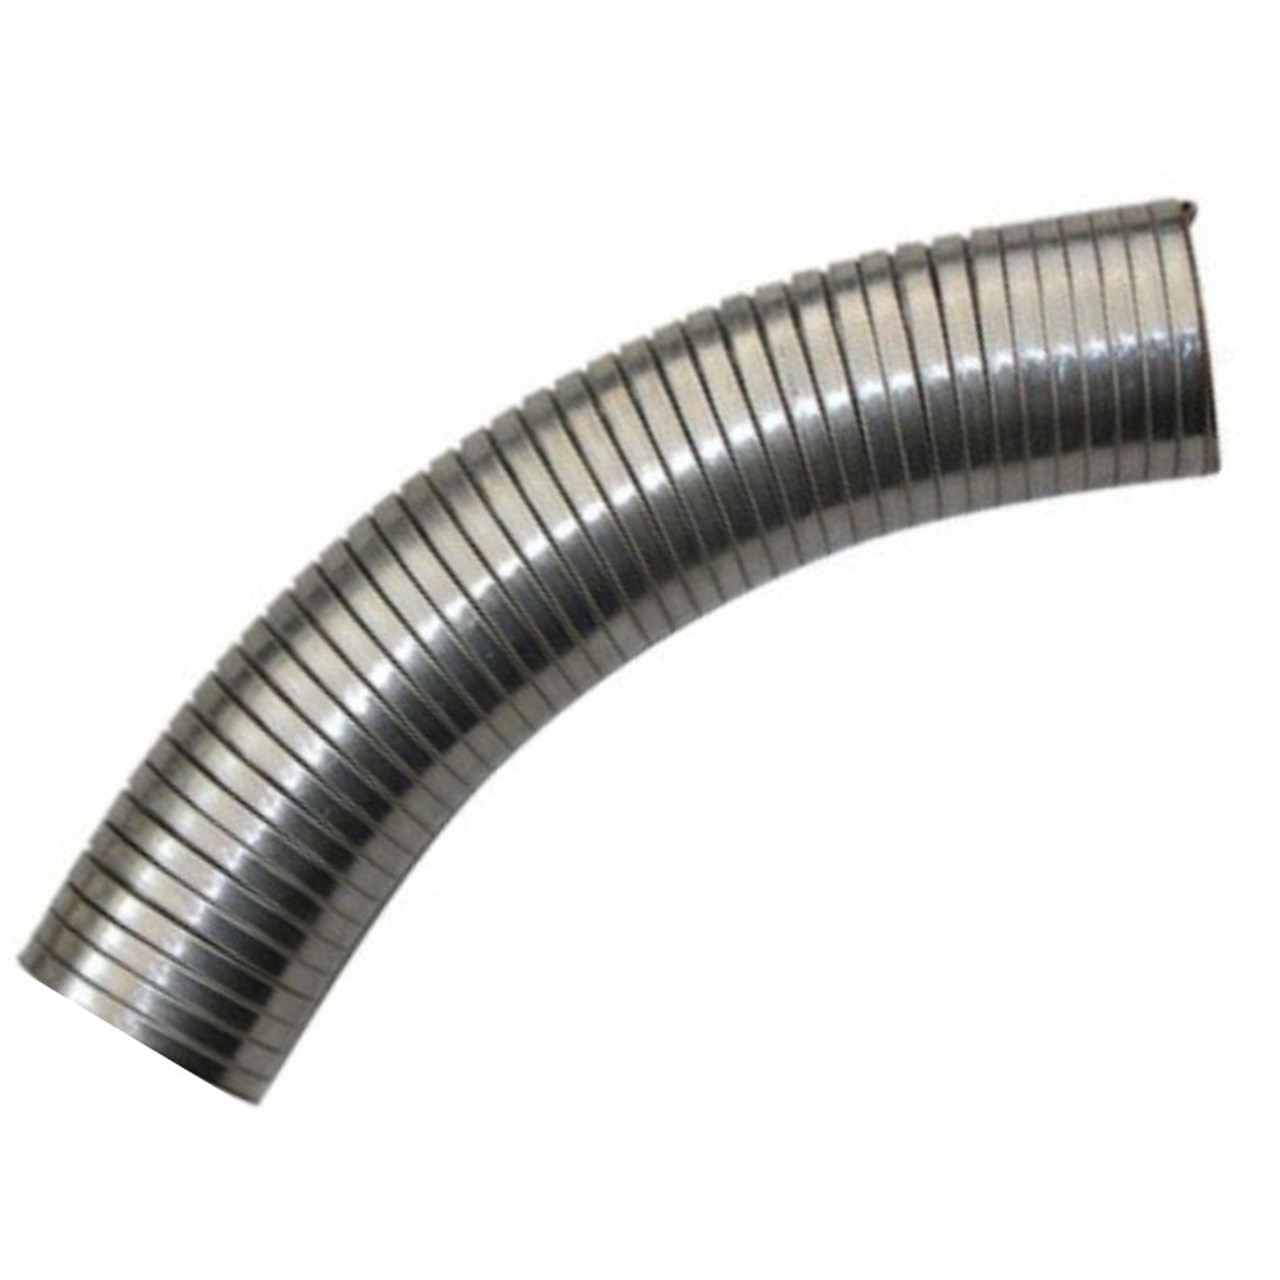 5 x 60 018 304 stainless steel flex exhaust hose sf 560